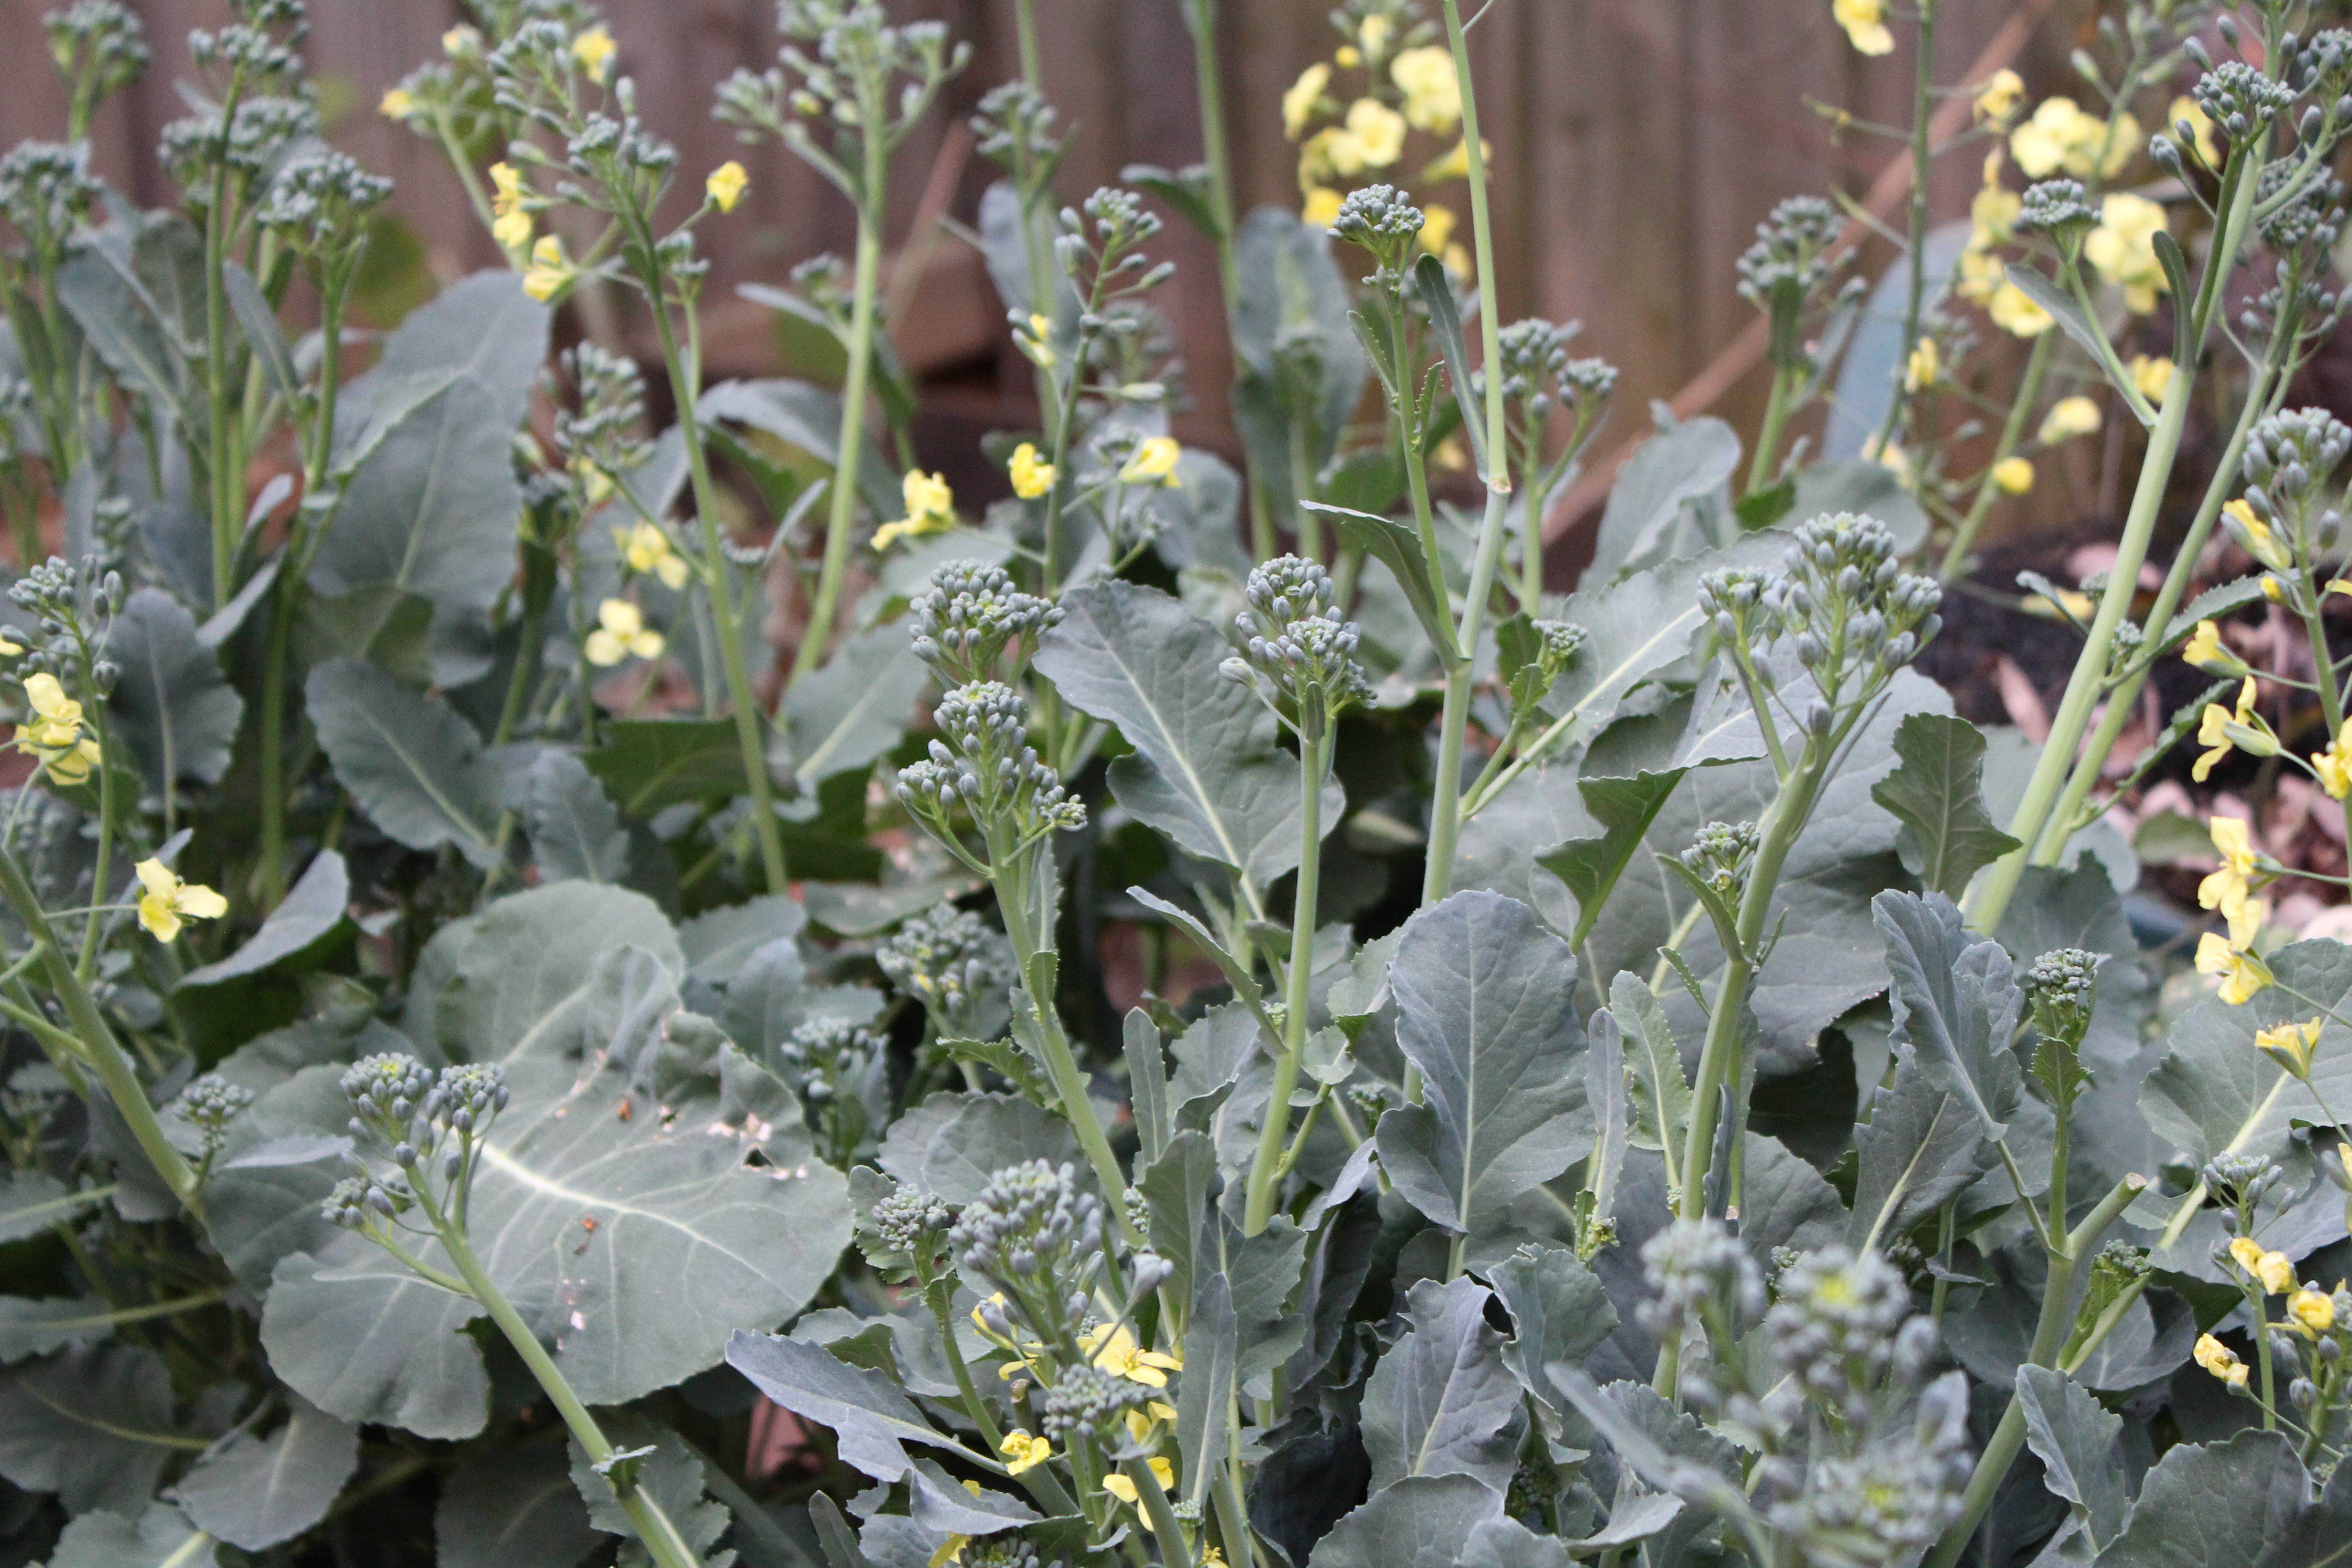 Broccoli Bolting The Gardener And The Chef